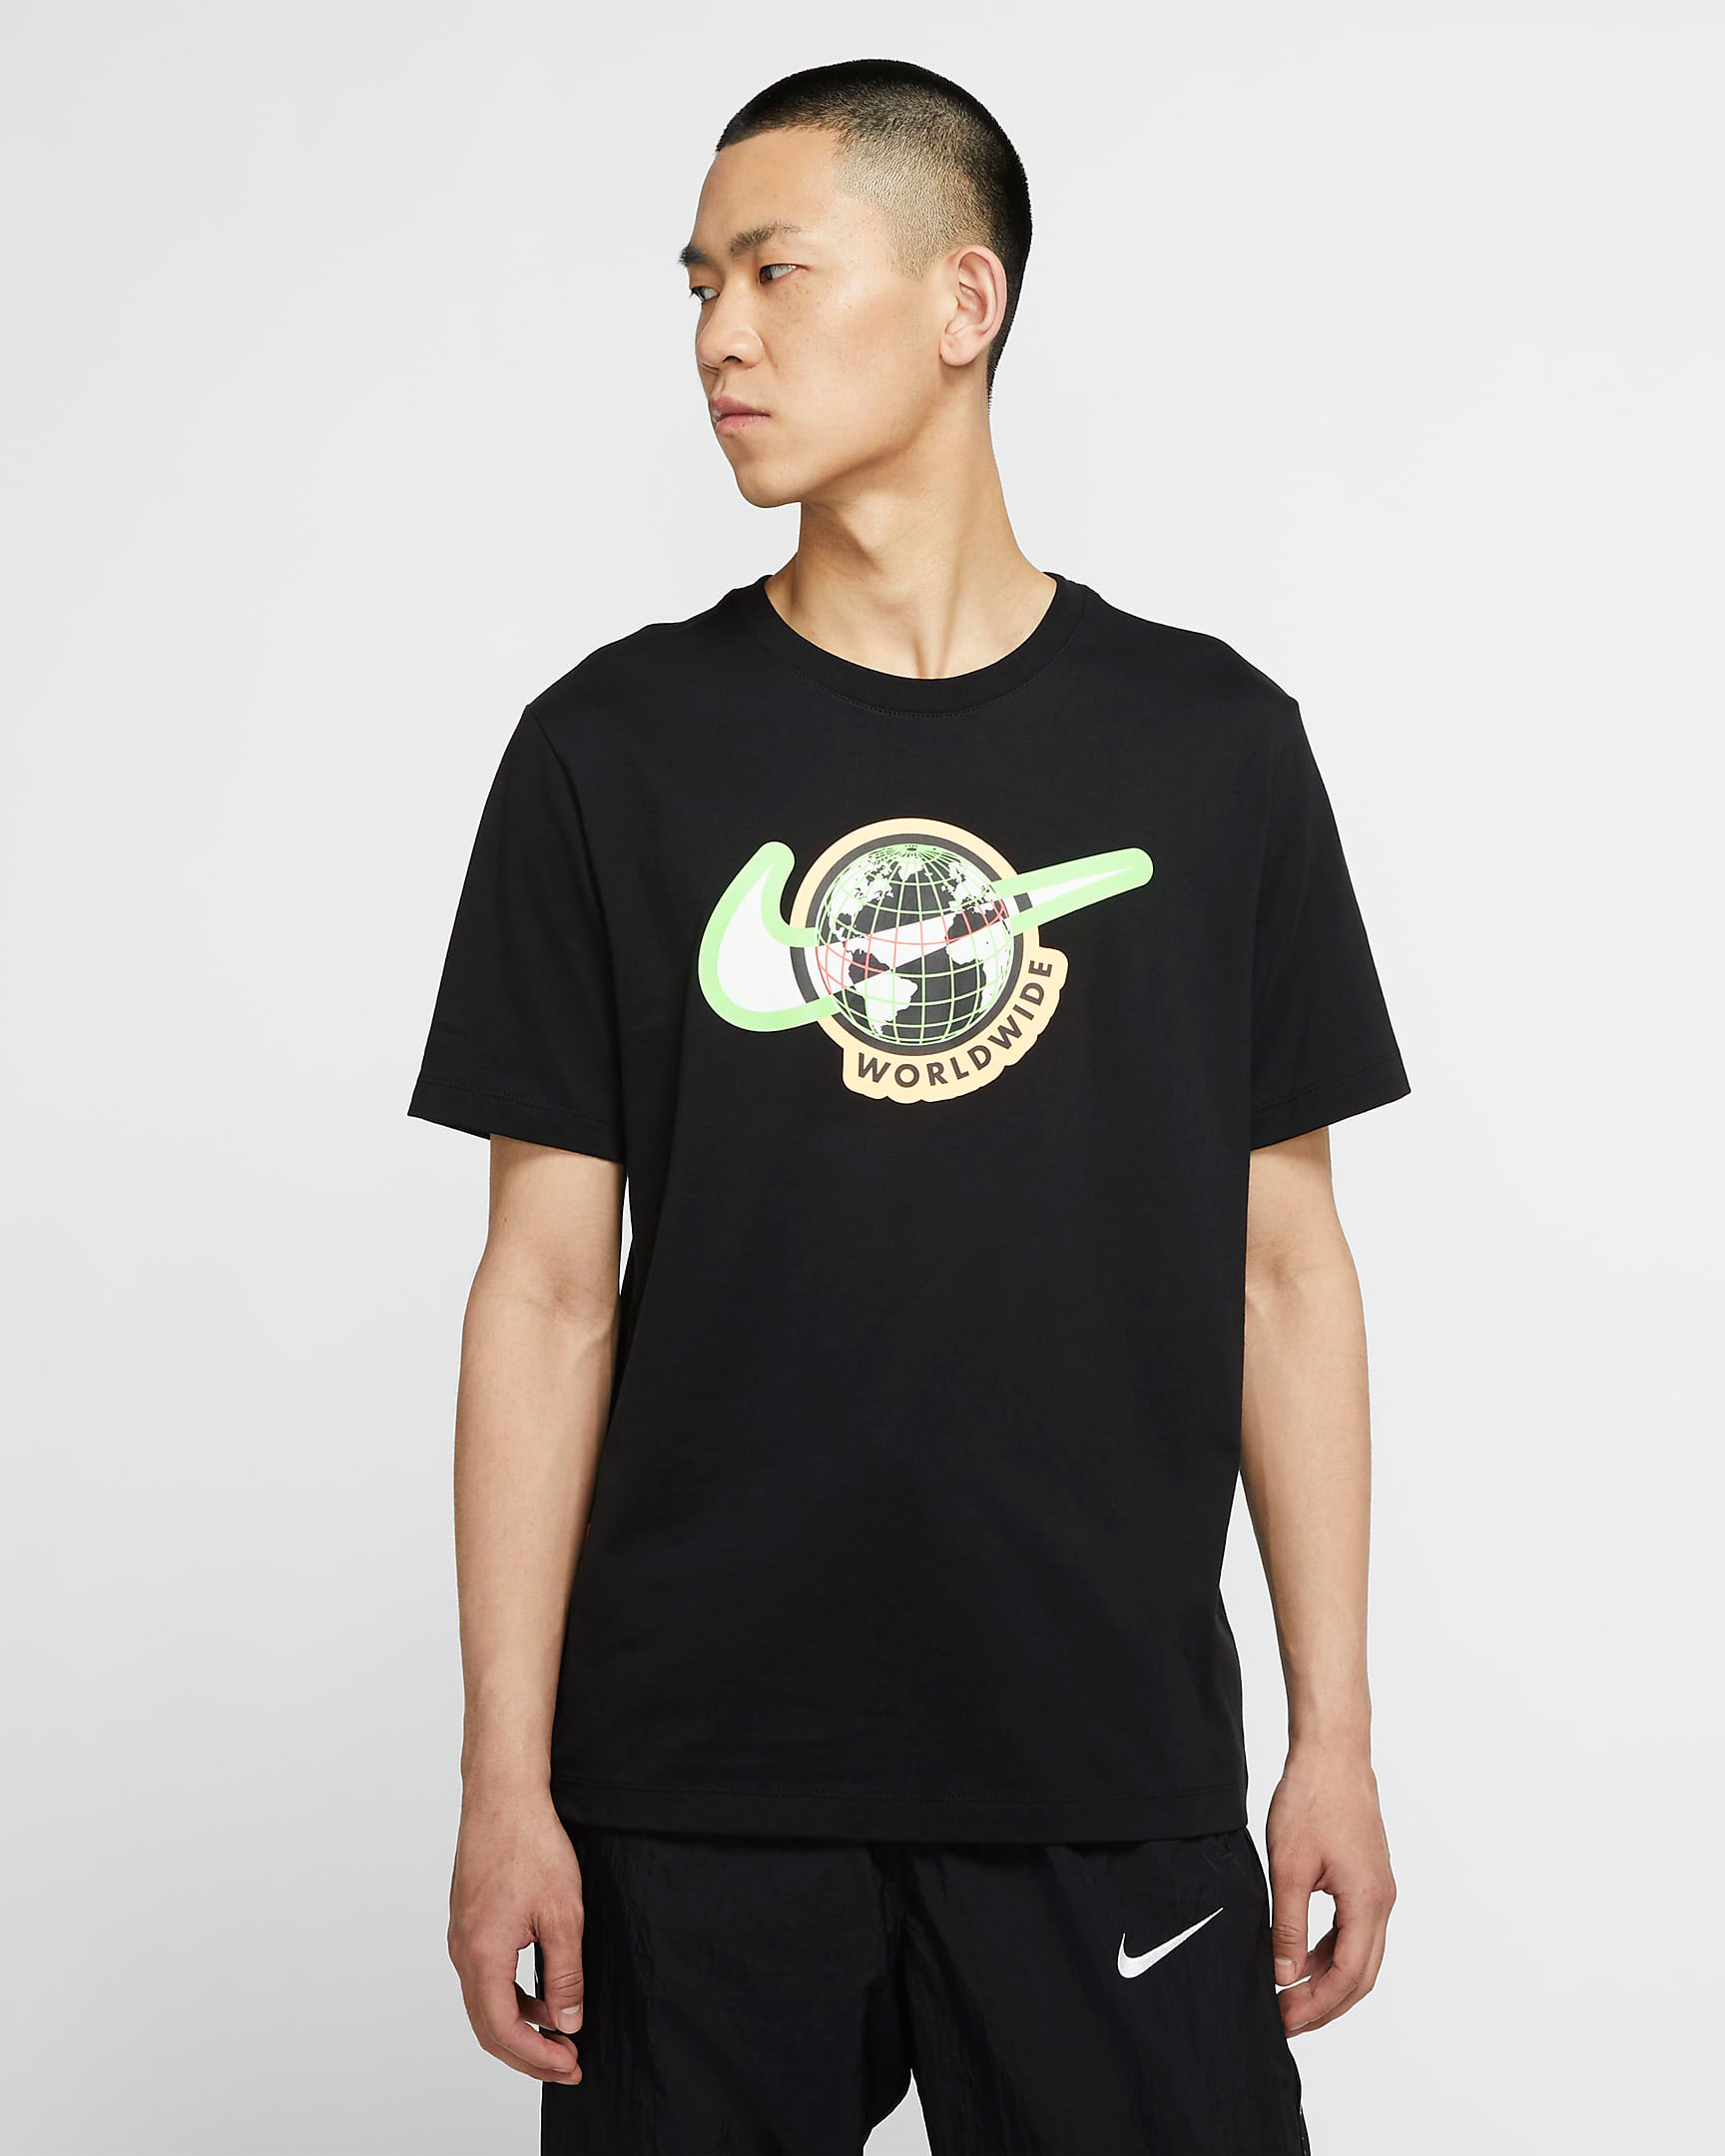 nike-worldwide-shirt-black